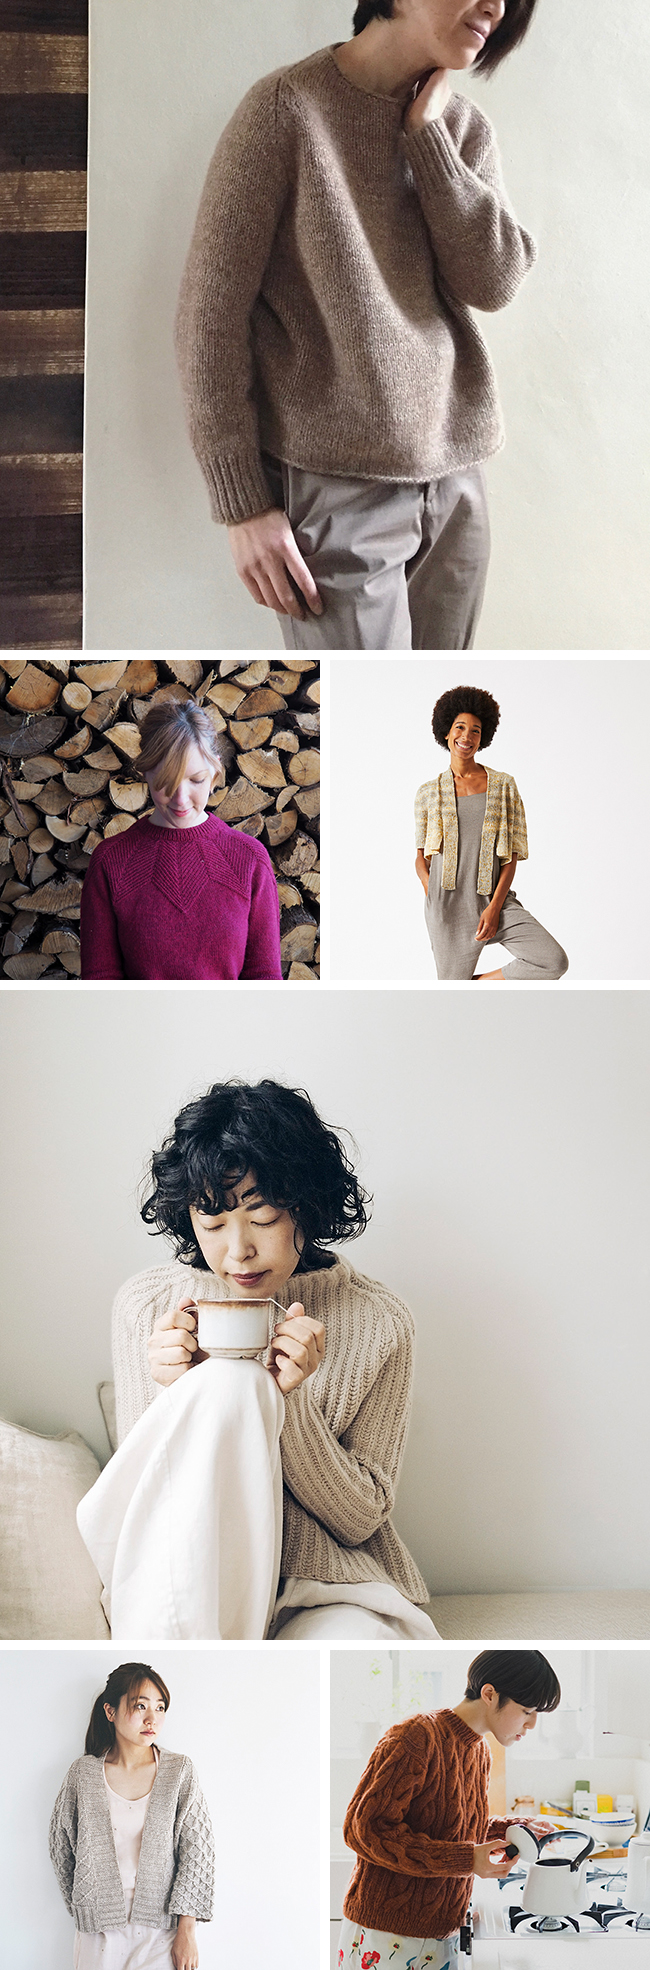 Best knitting patterns of the year (sweaters)